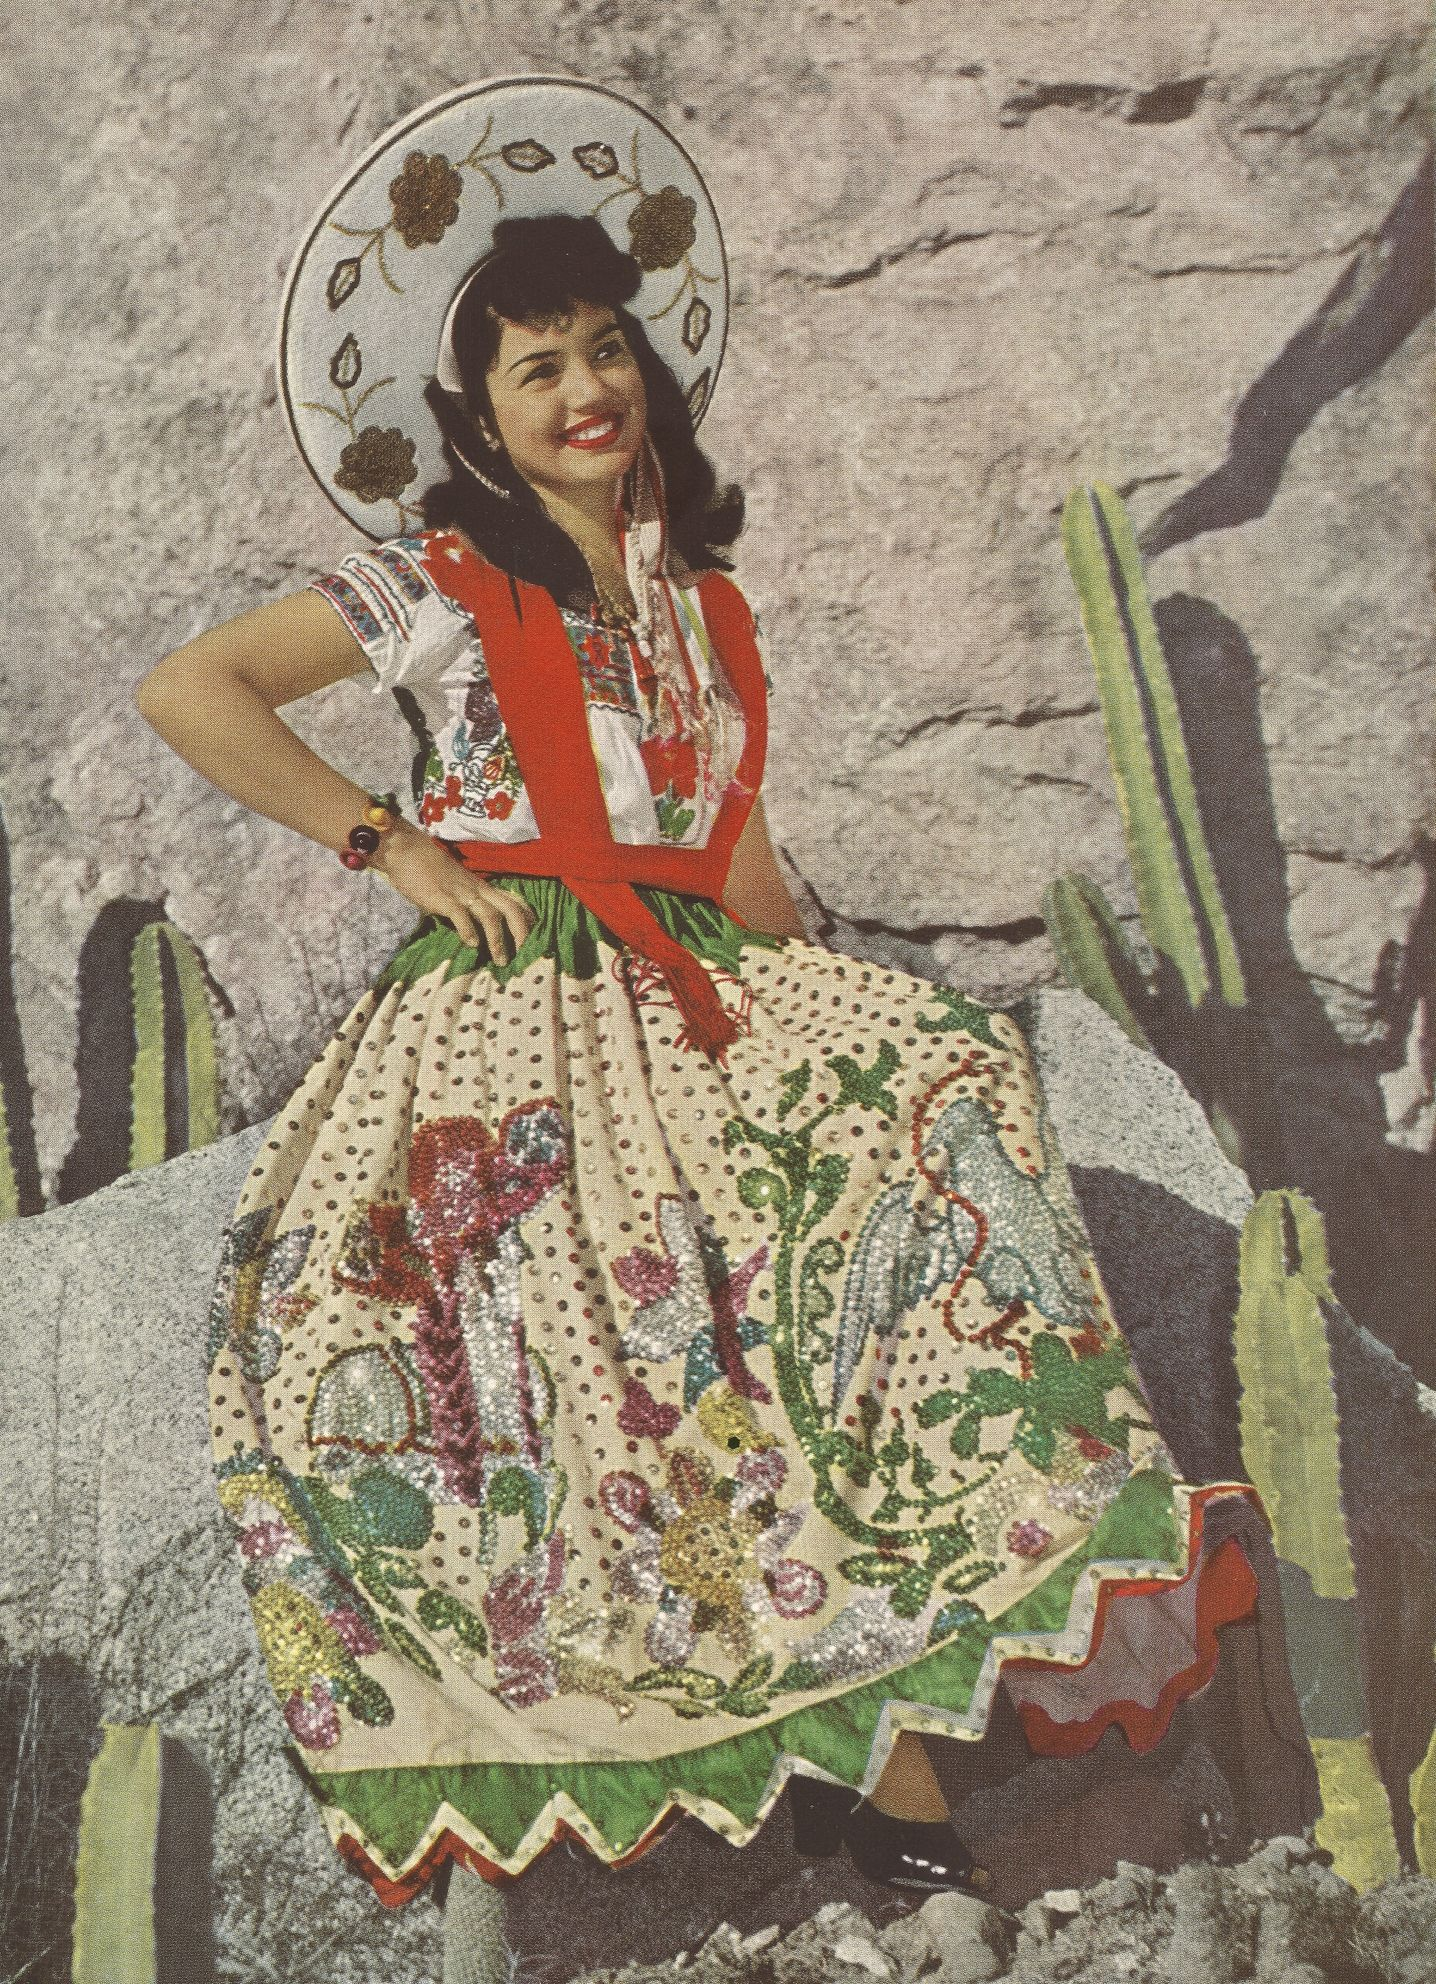 Beautiful Mexican Senorita in a great traditional outfit